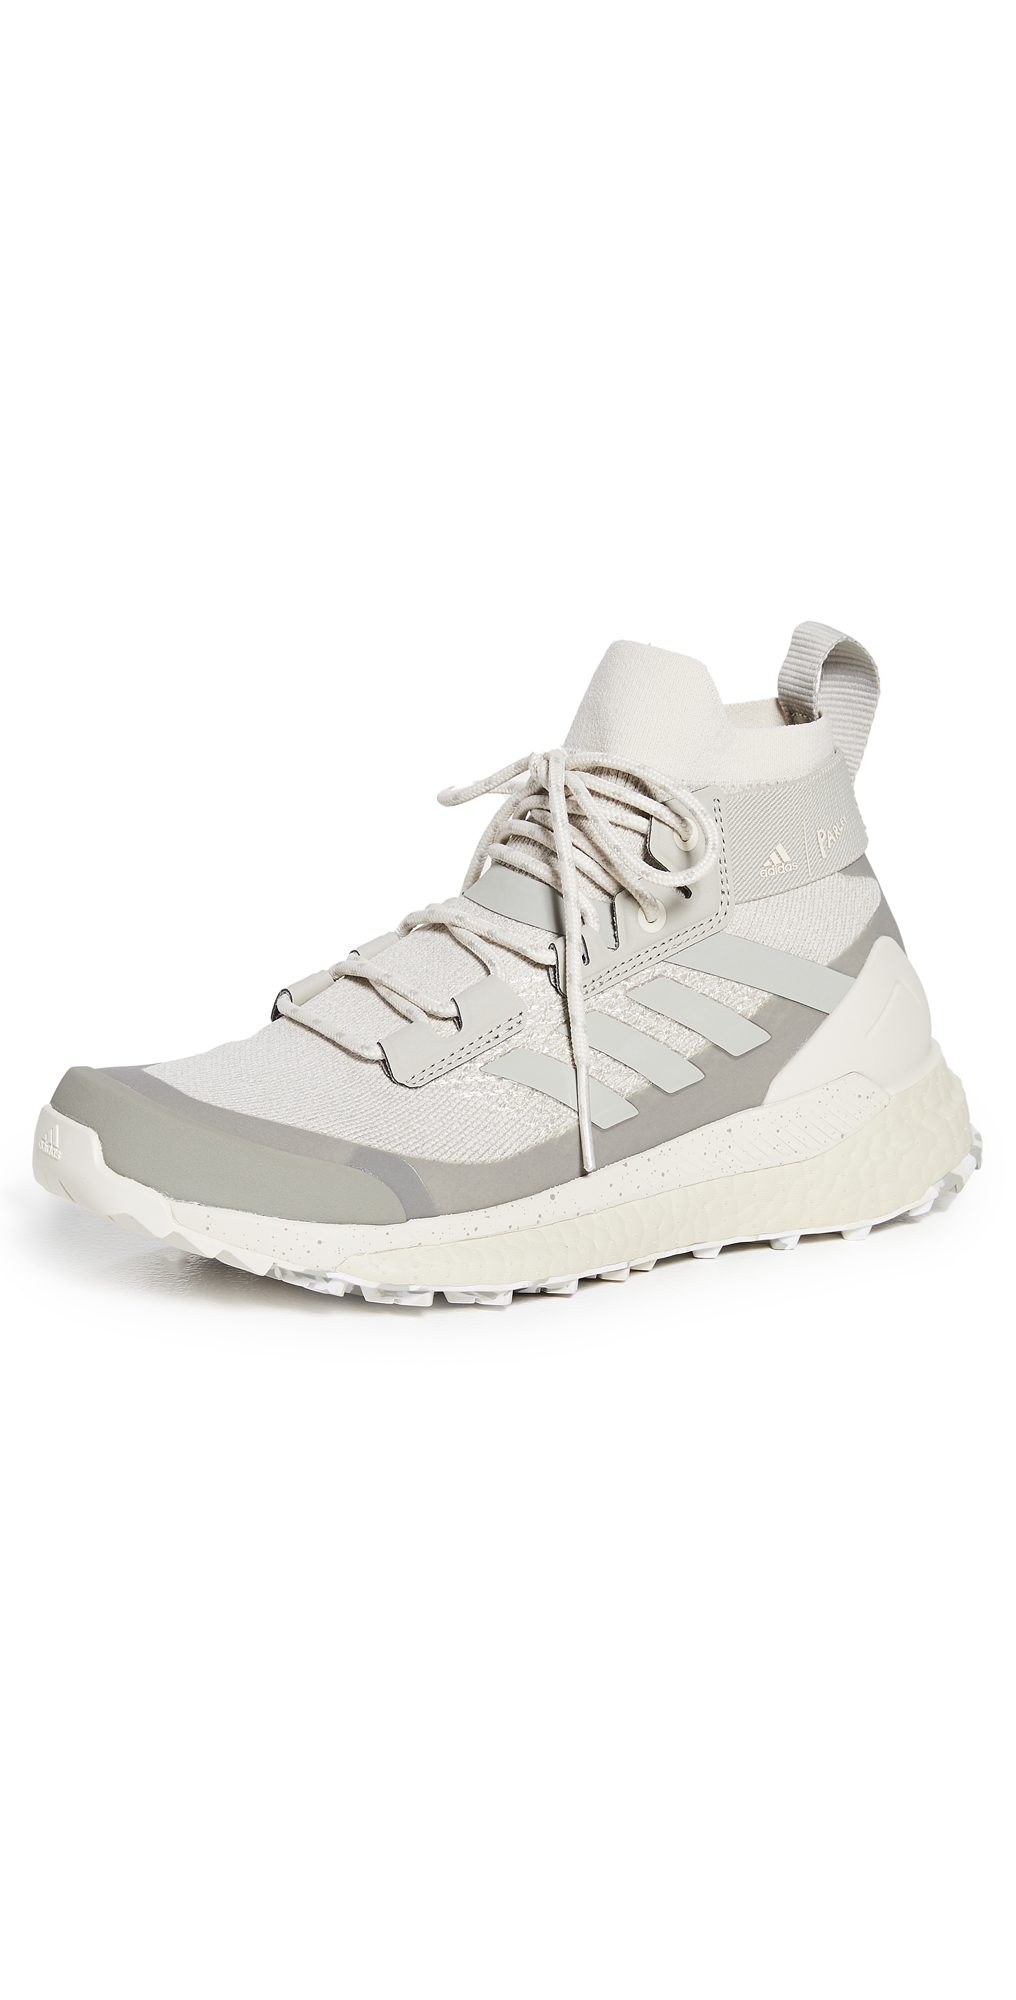 adidas Terrex Hiking Parley Sneakers